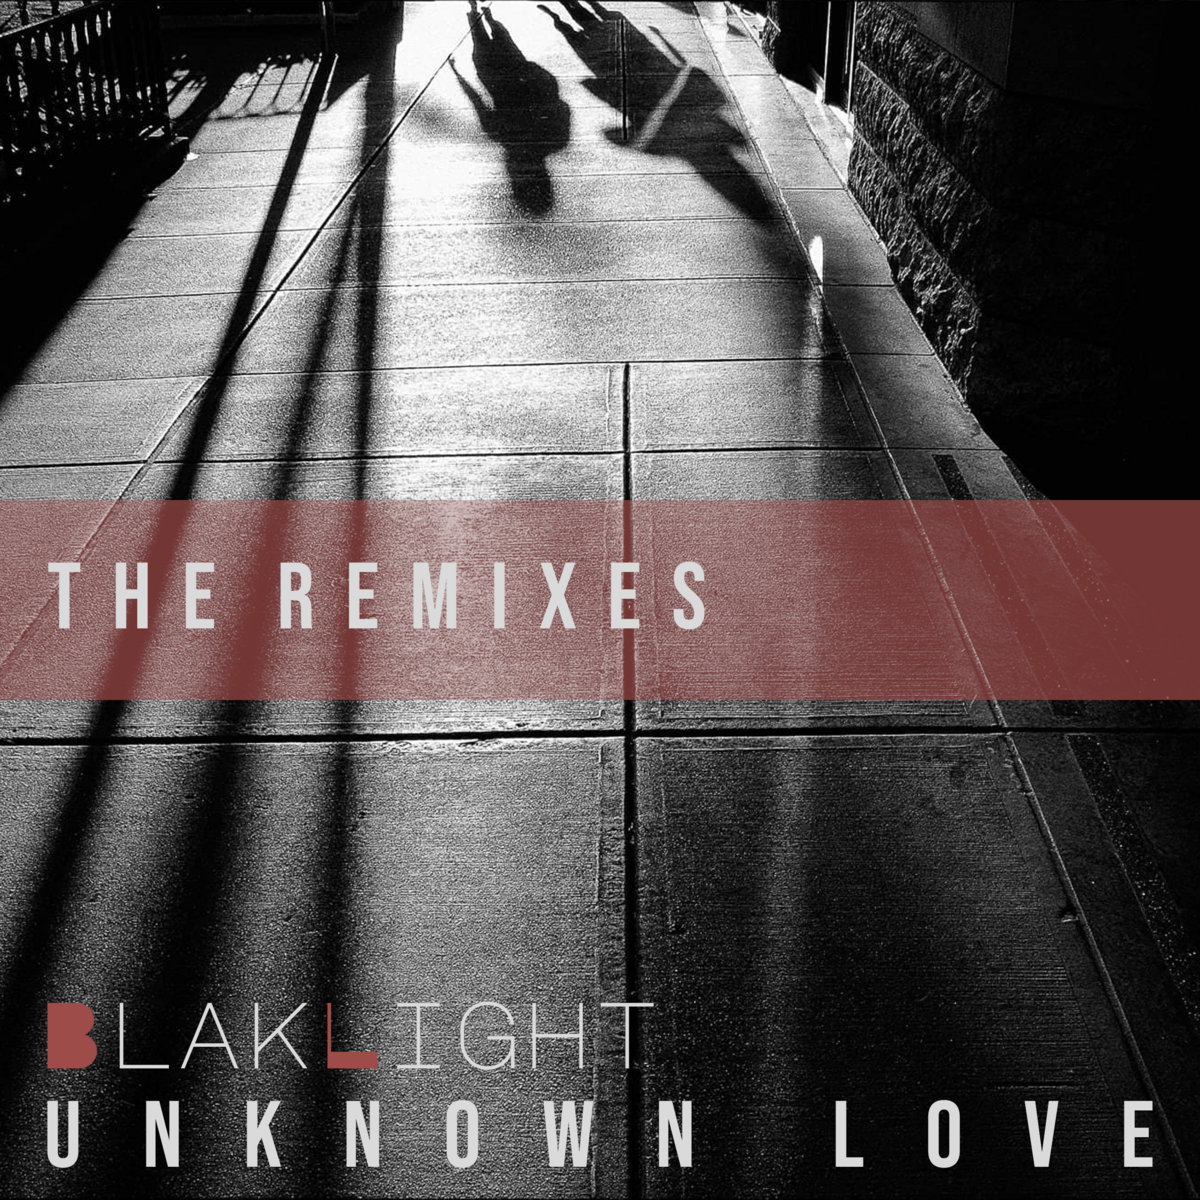 BlakLight - Unknown Love (NITE Remix) - BlakLight - Unknown Love (NITE Remix)